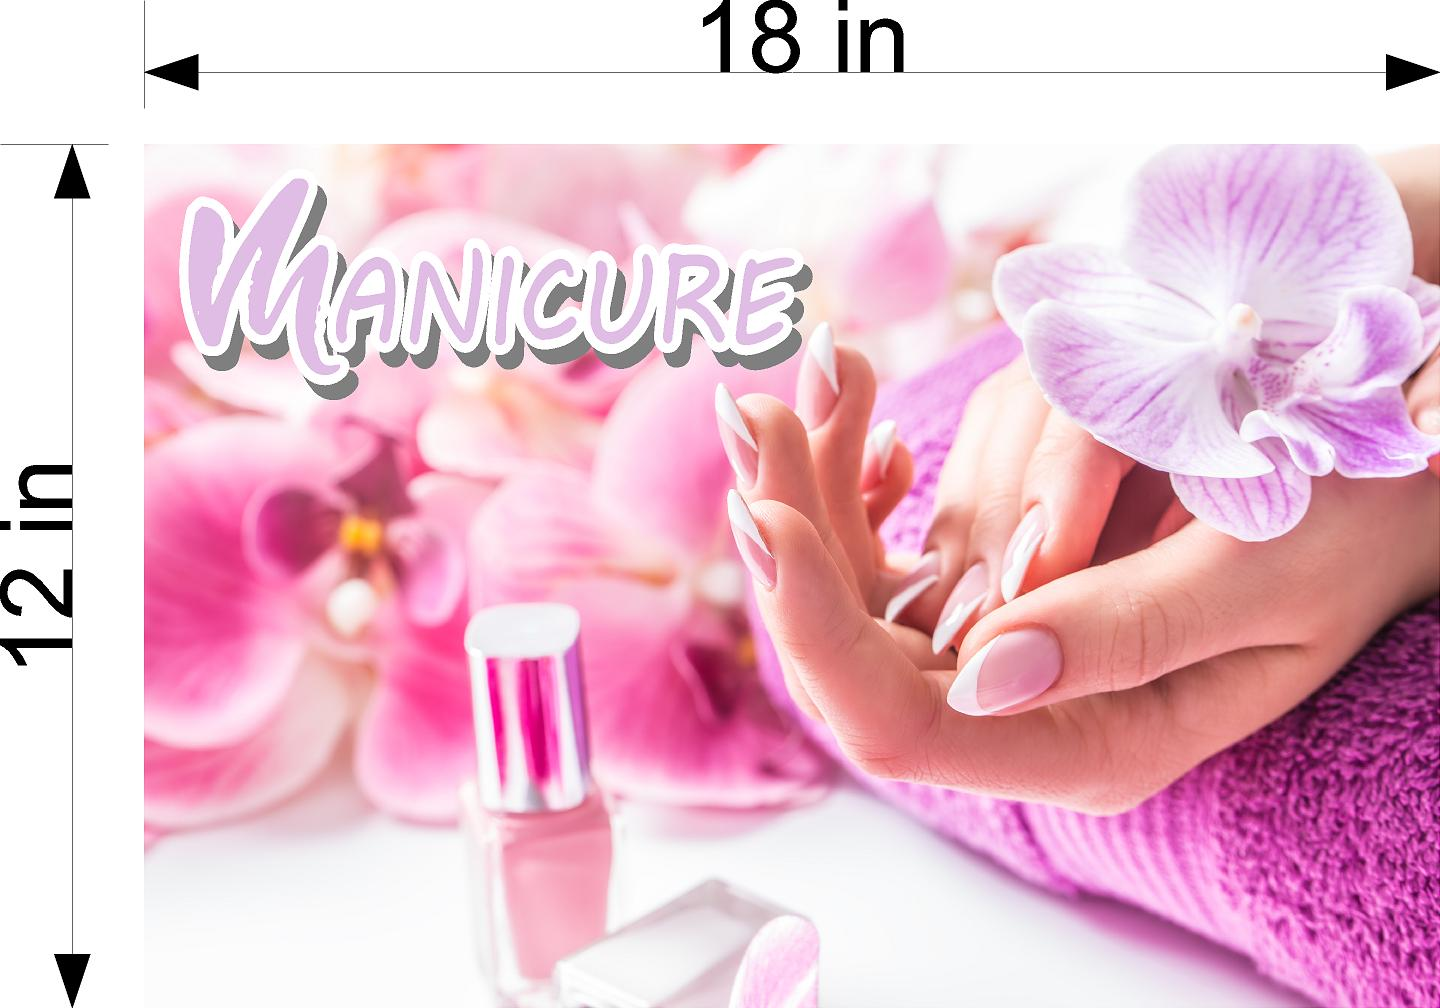 Manicure 05 Wallpaper Poster Decal with Adhesive Backing Wall Sticker Decor Indoors Interior Sign Horizontal